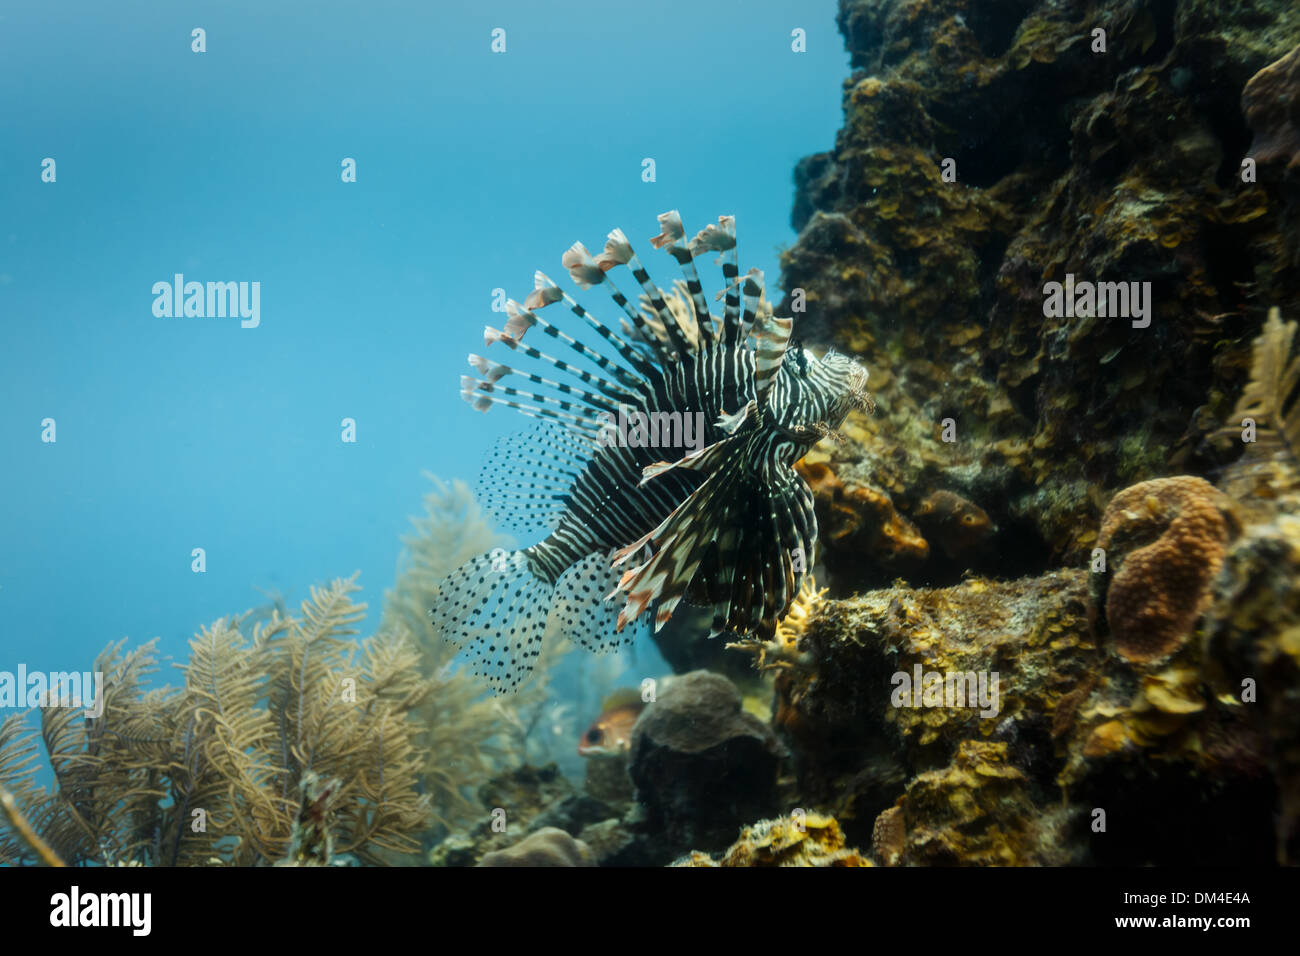 Close-up of venomous lionfish swimming on coral reef in Hol Chan Marine Reserve Belize - Stock Image